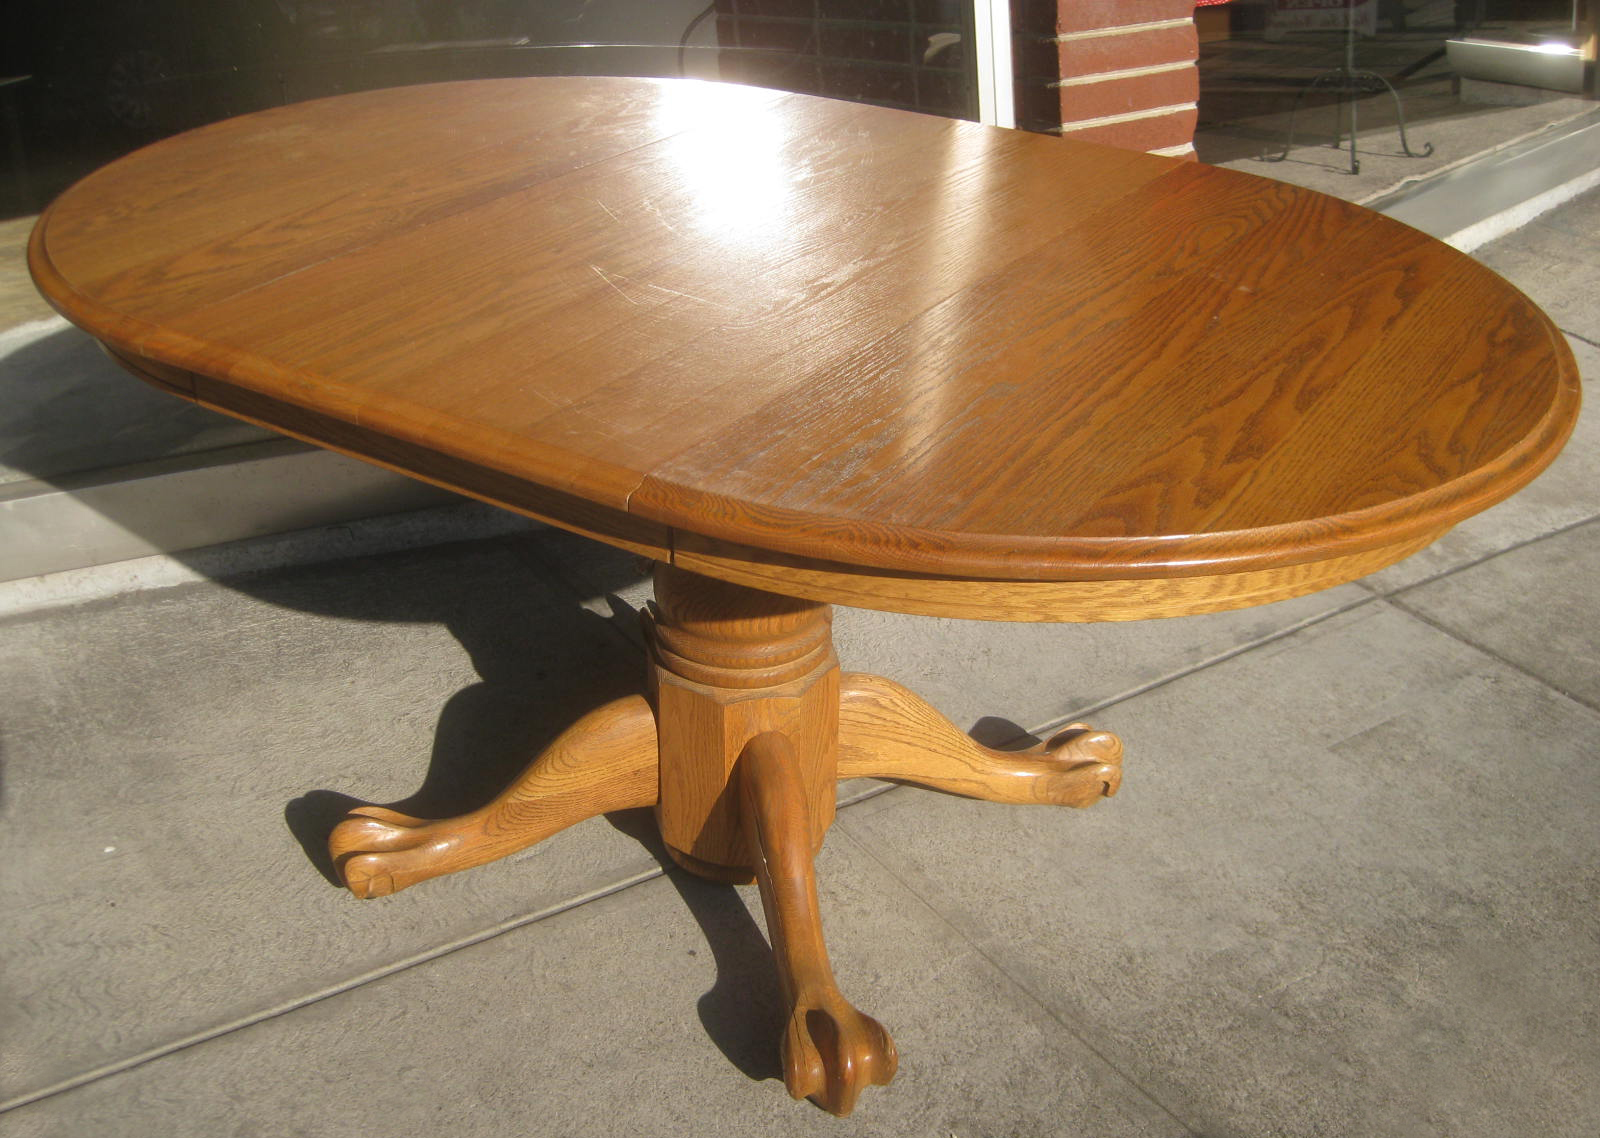 Merveilleux SOLD   Oak Clawfoot Table With One Leaf   $90